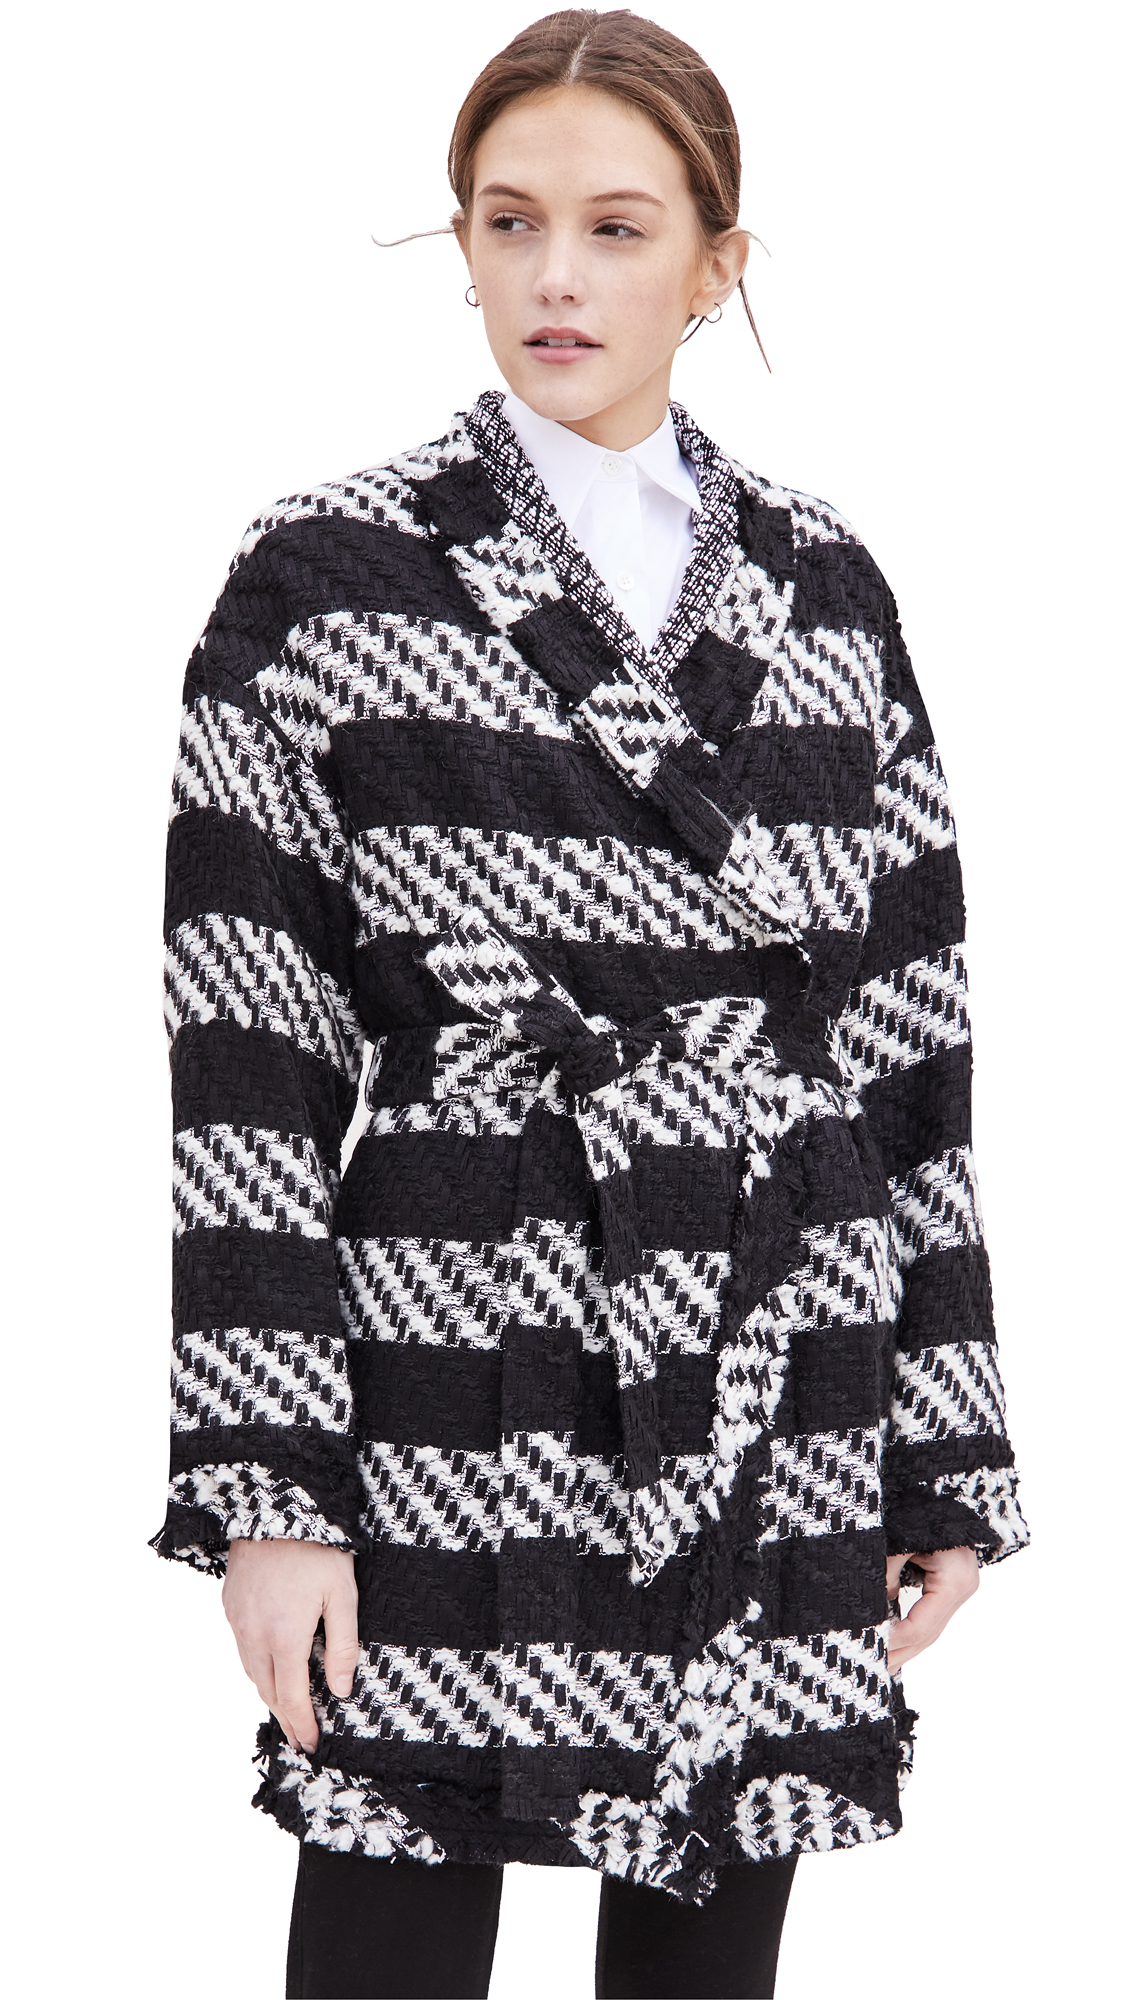 alice + olivia Jorgie Reversible Wrap Coat with Tie Belt